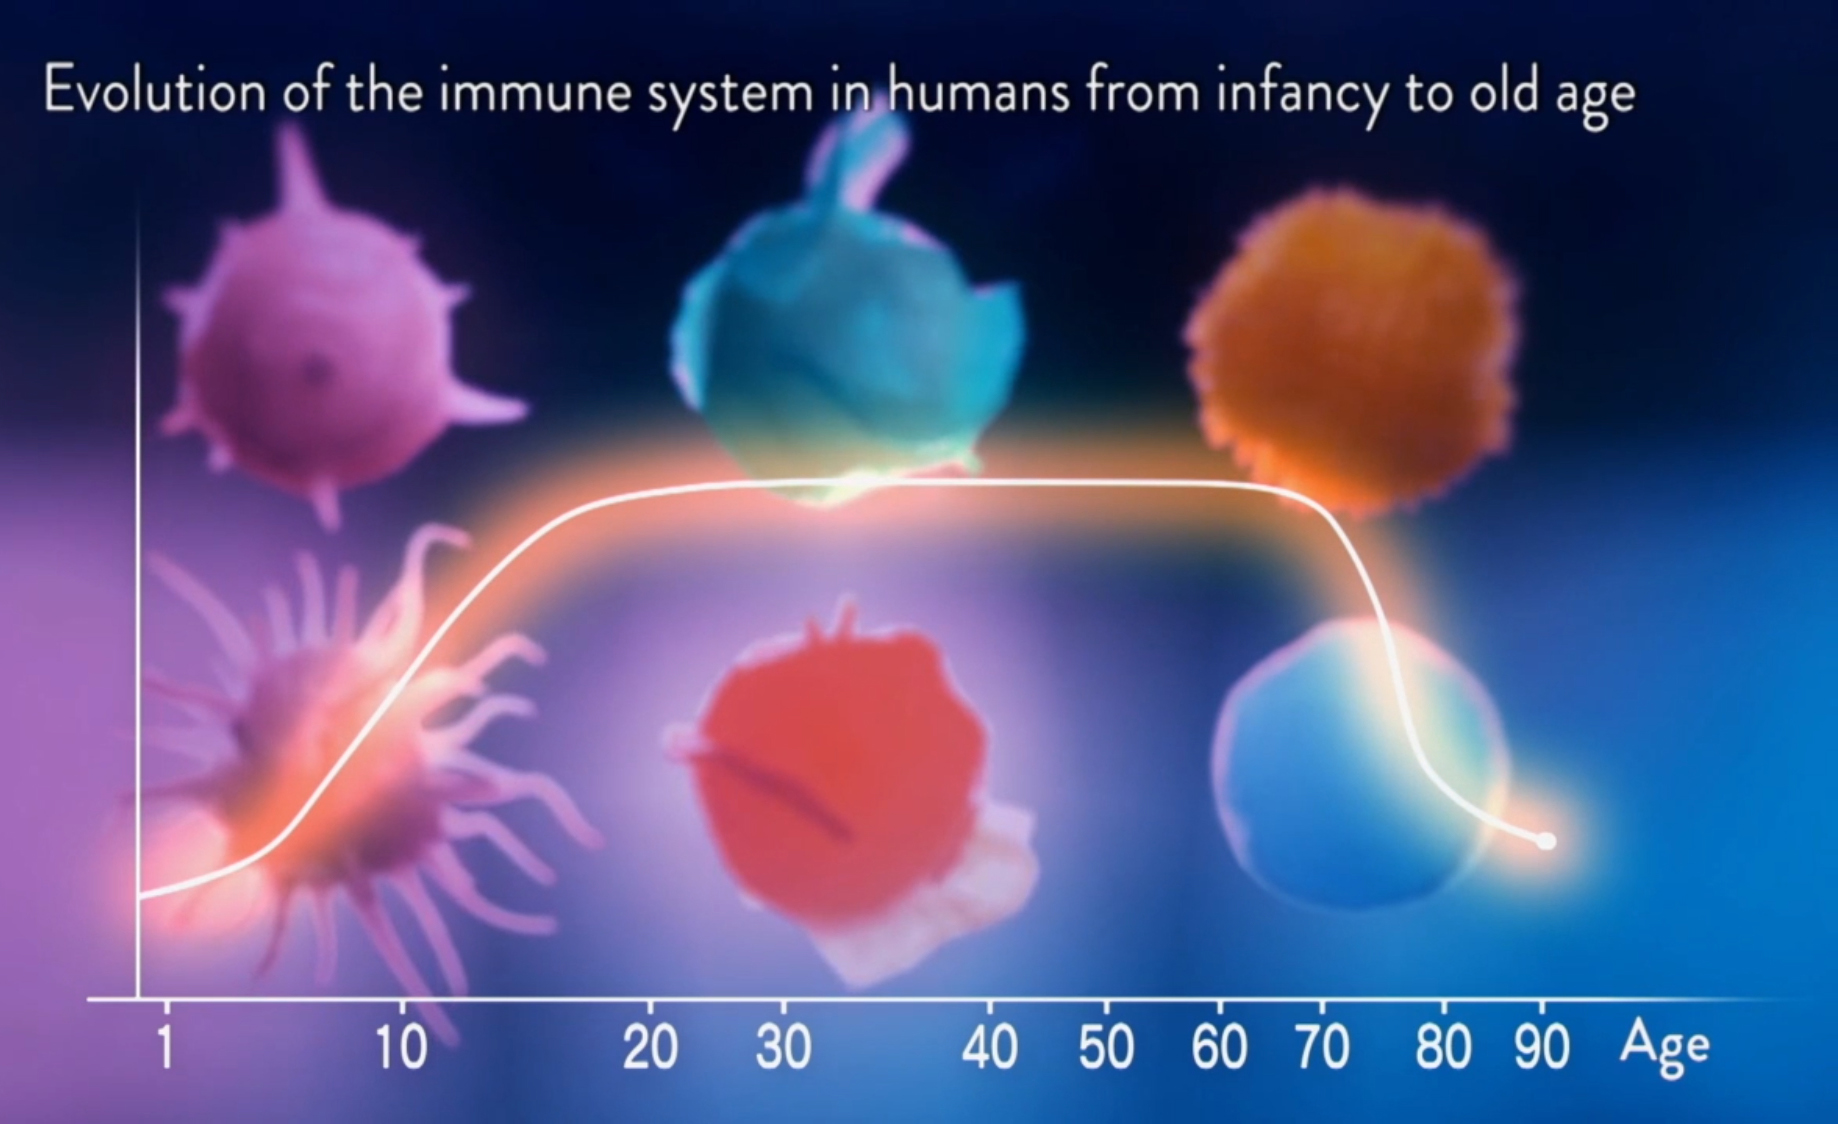 031 Evolution of immune system